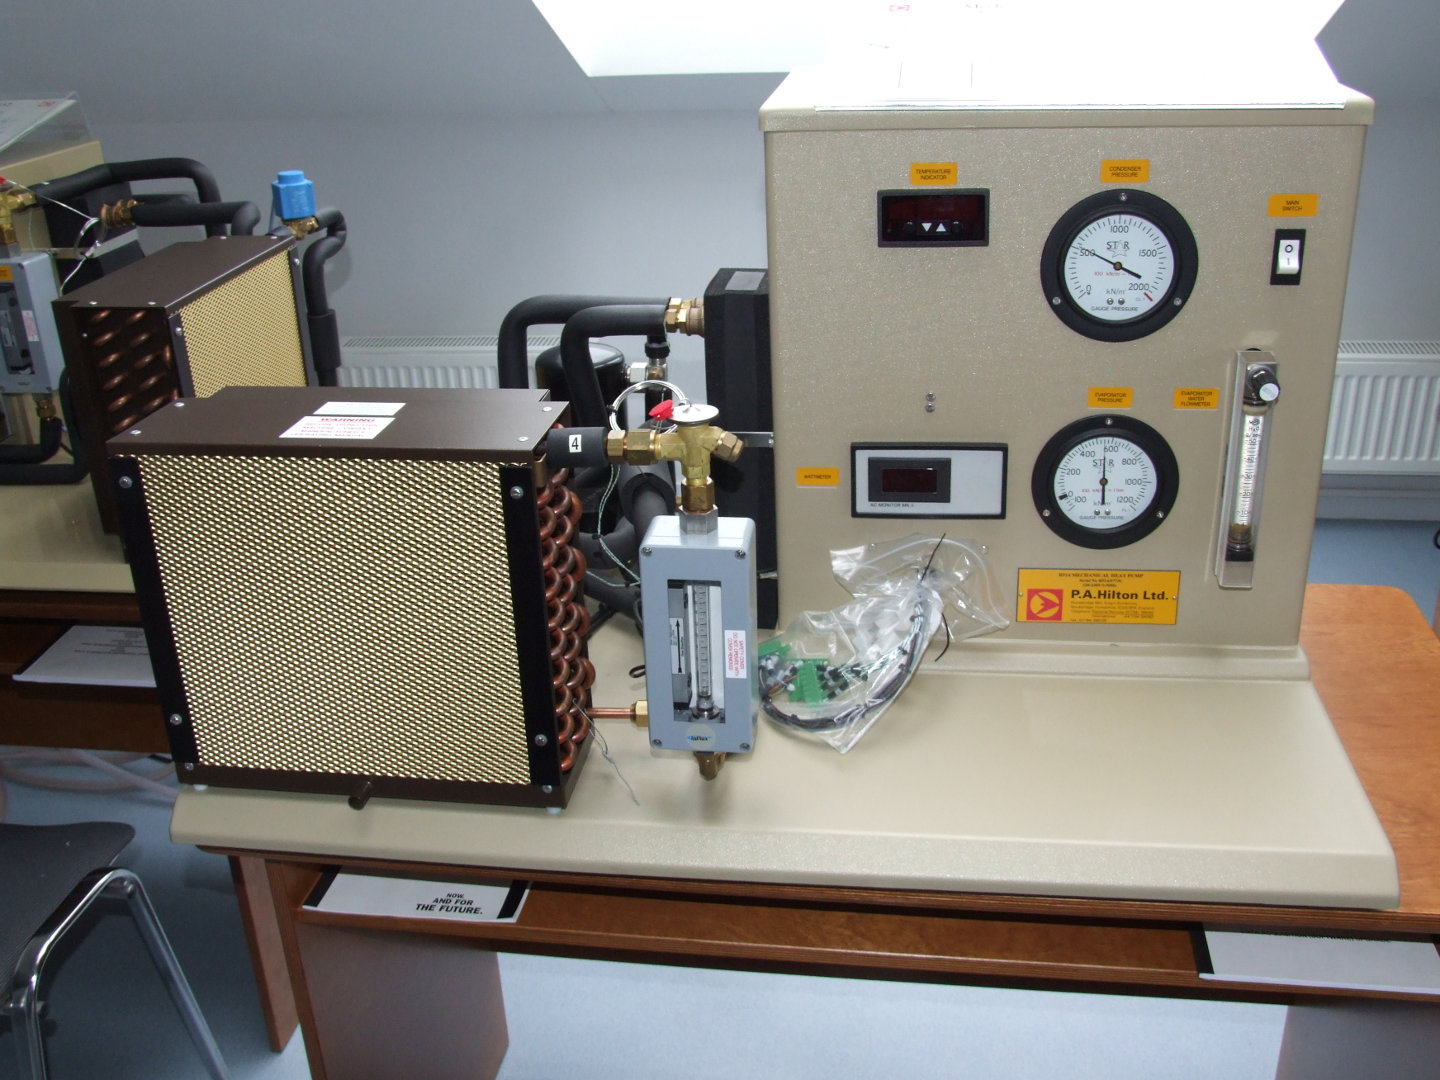 Heat pump operations research training stand